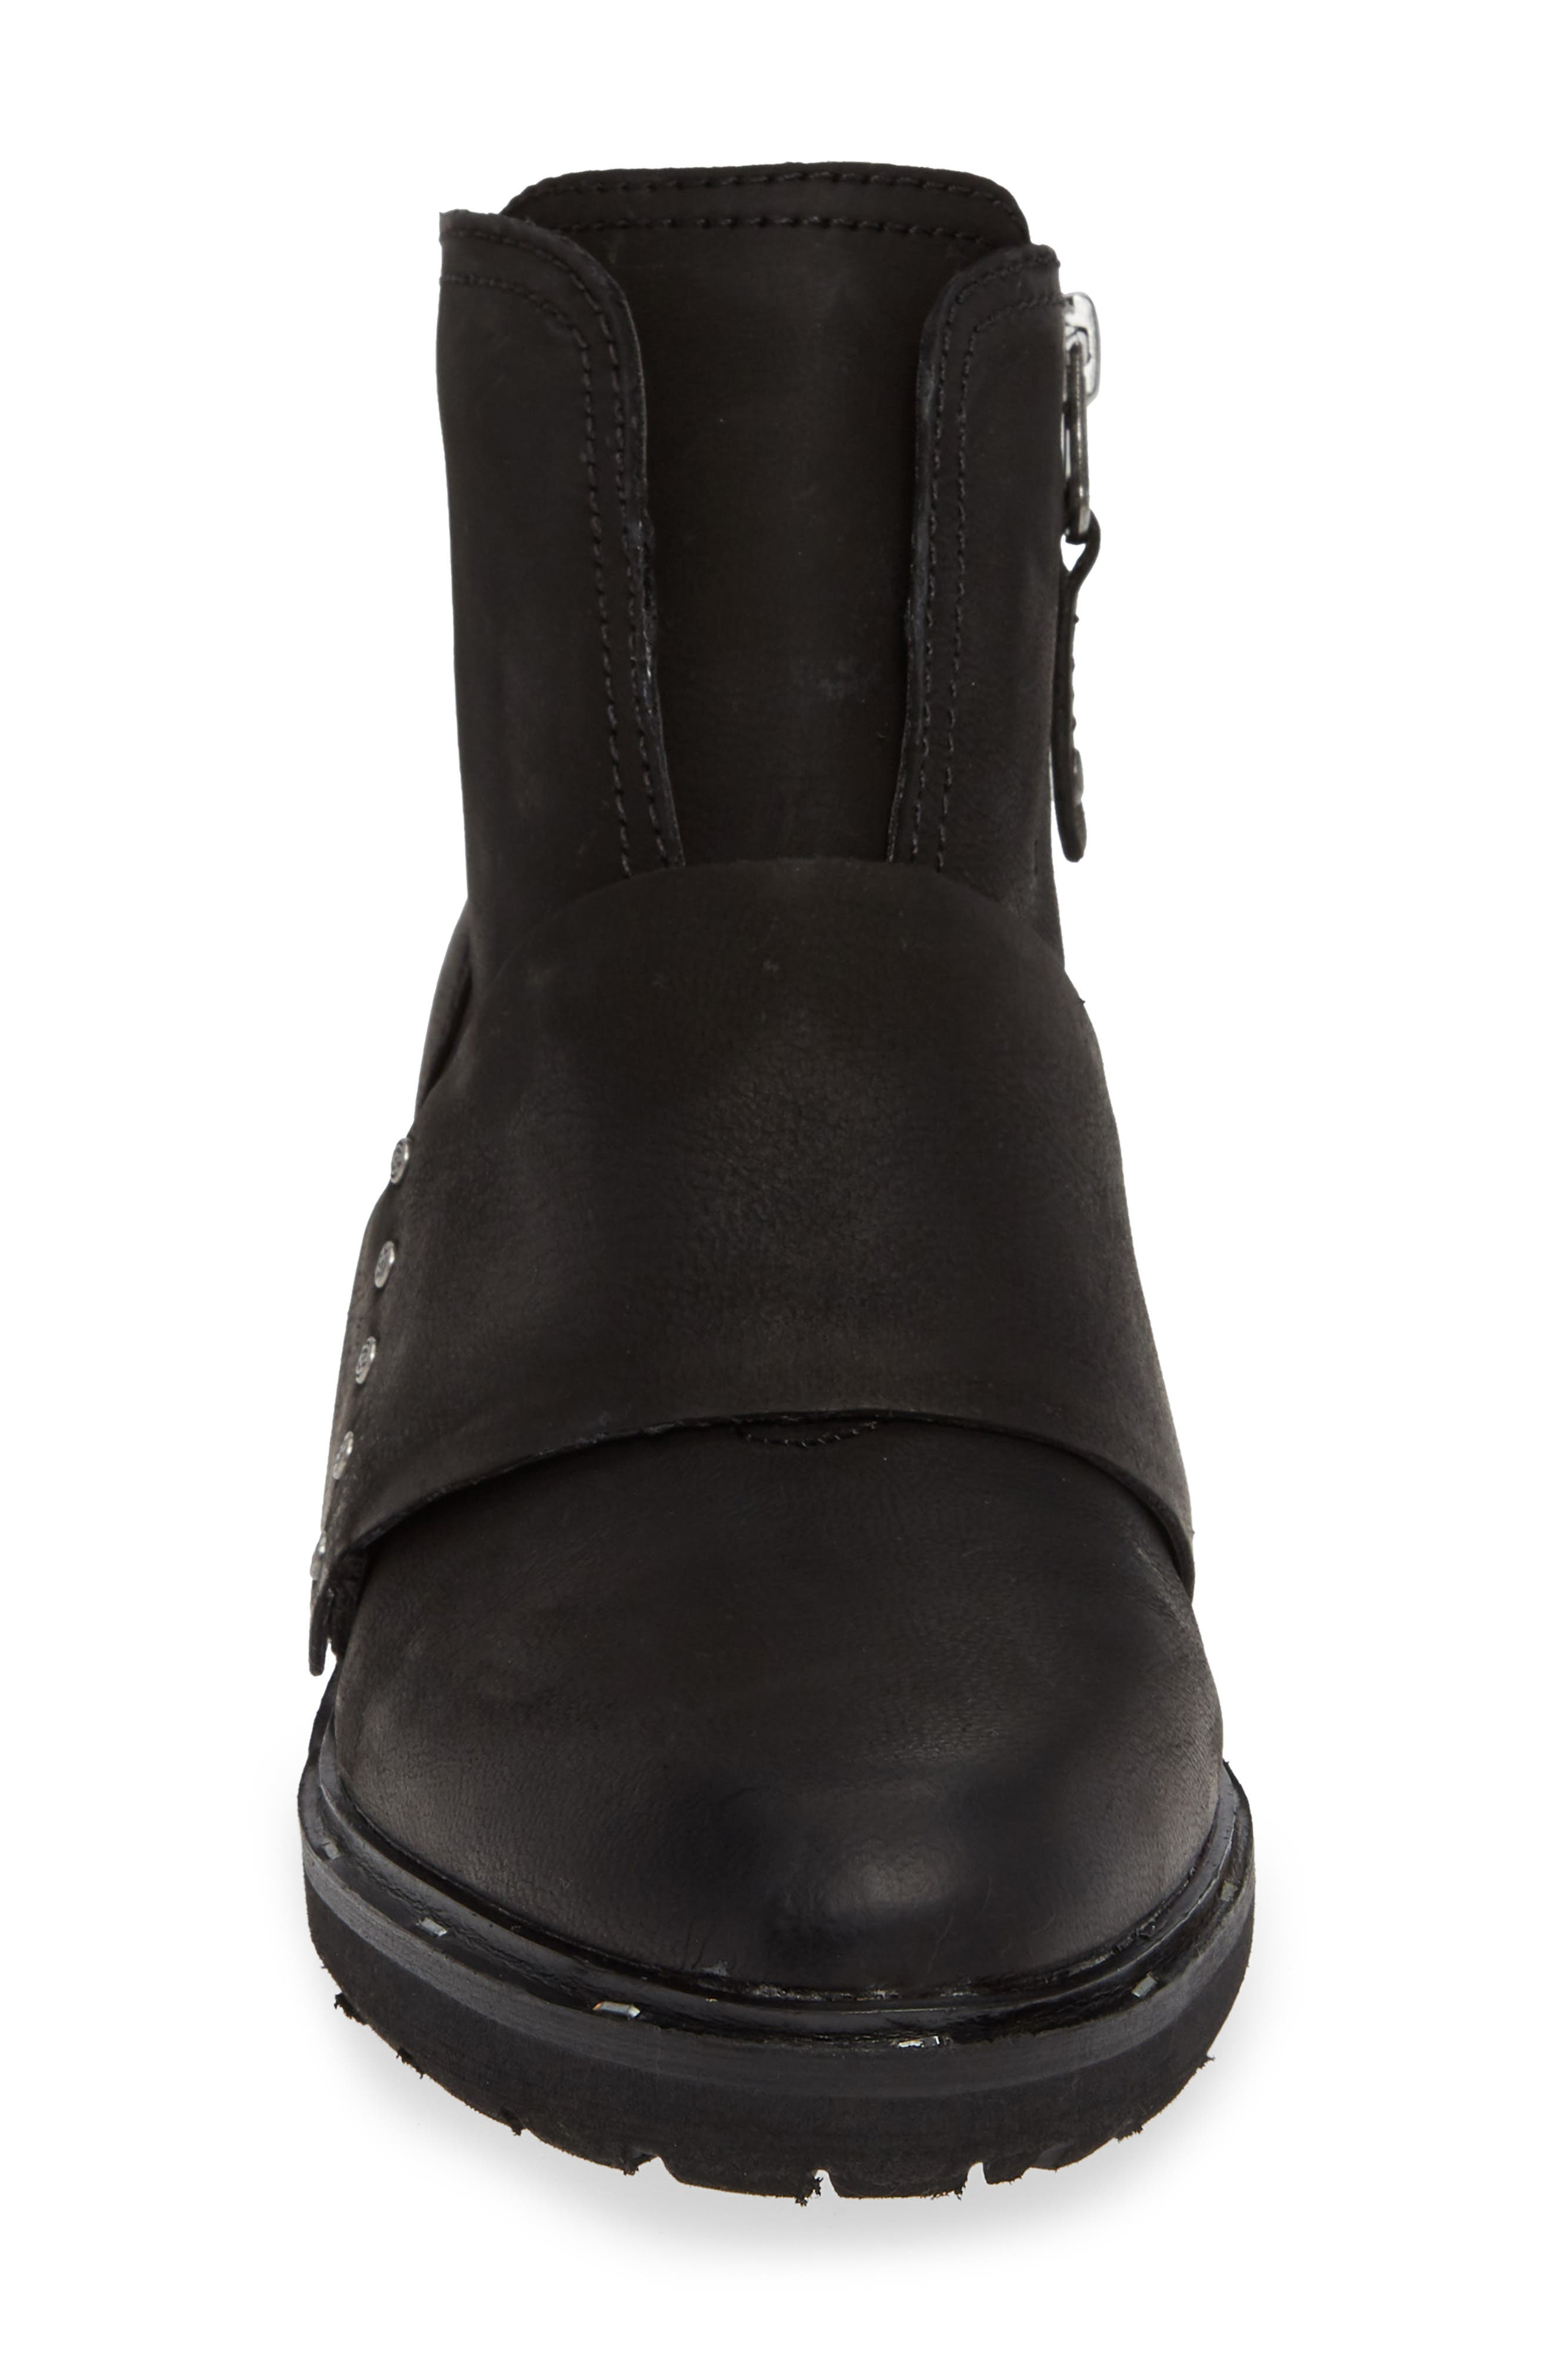 Frontage Bootie,                             Alternate thumbnail 4, color,                             BLACK LEATHER